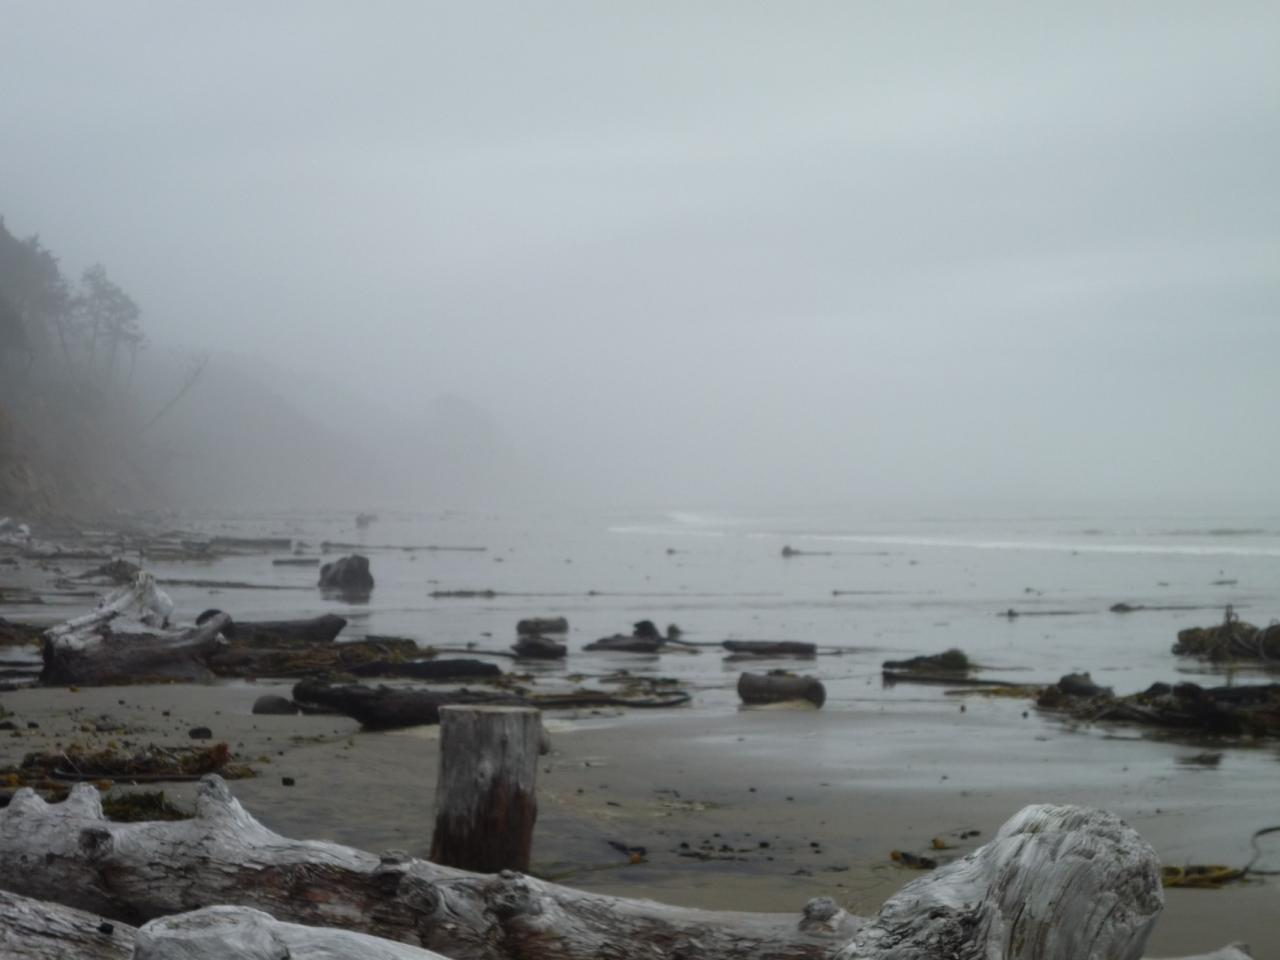 looking south from north end of Mile 224, foggy day, not long after high tide.